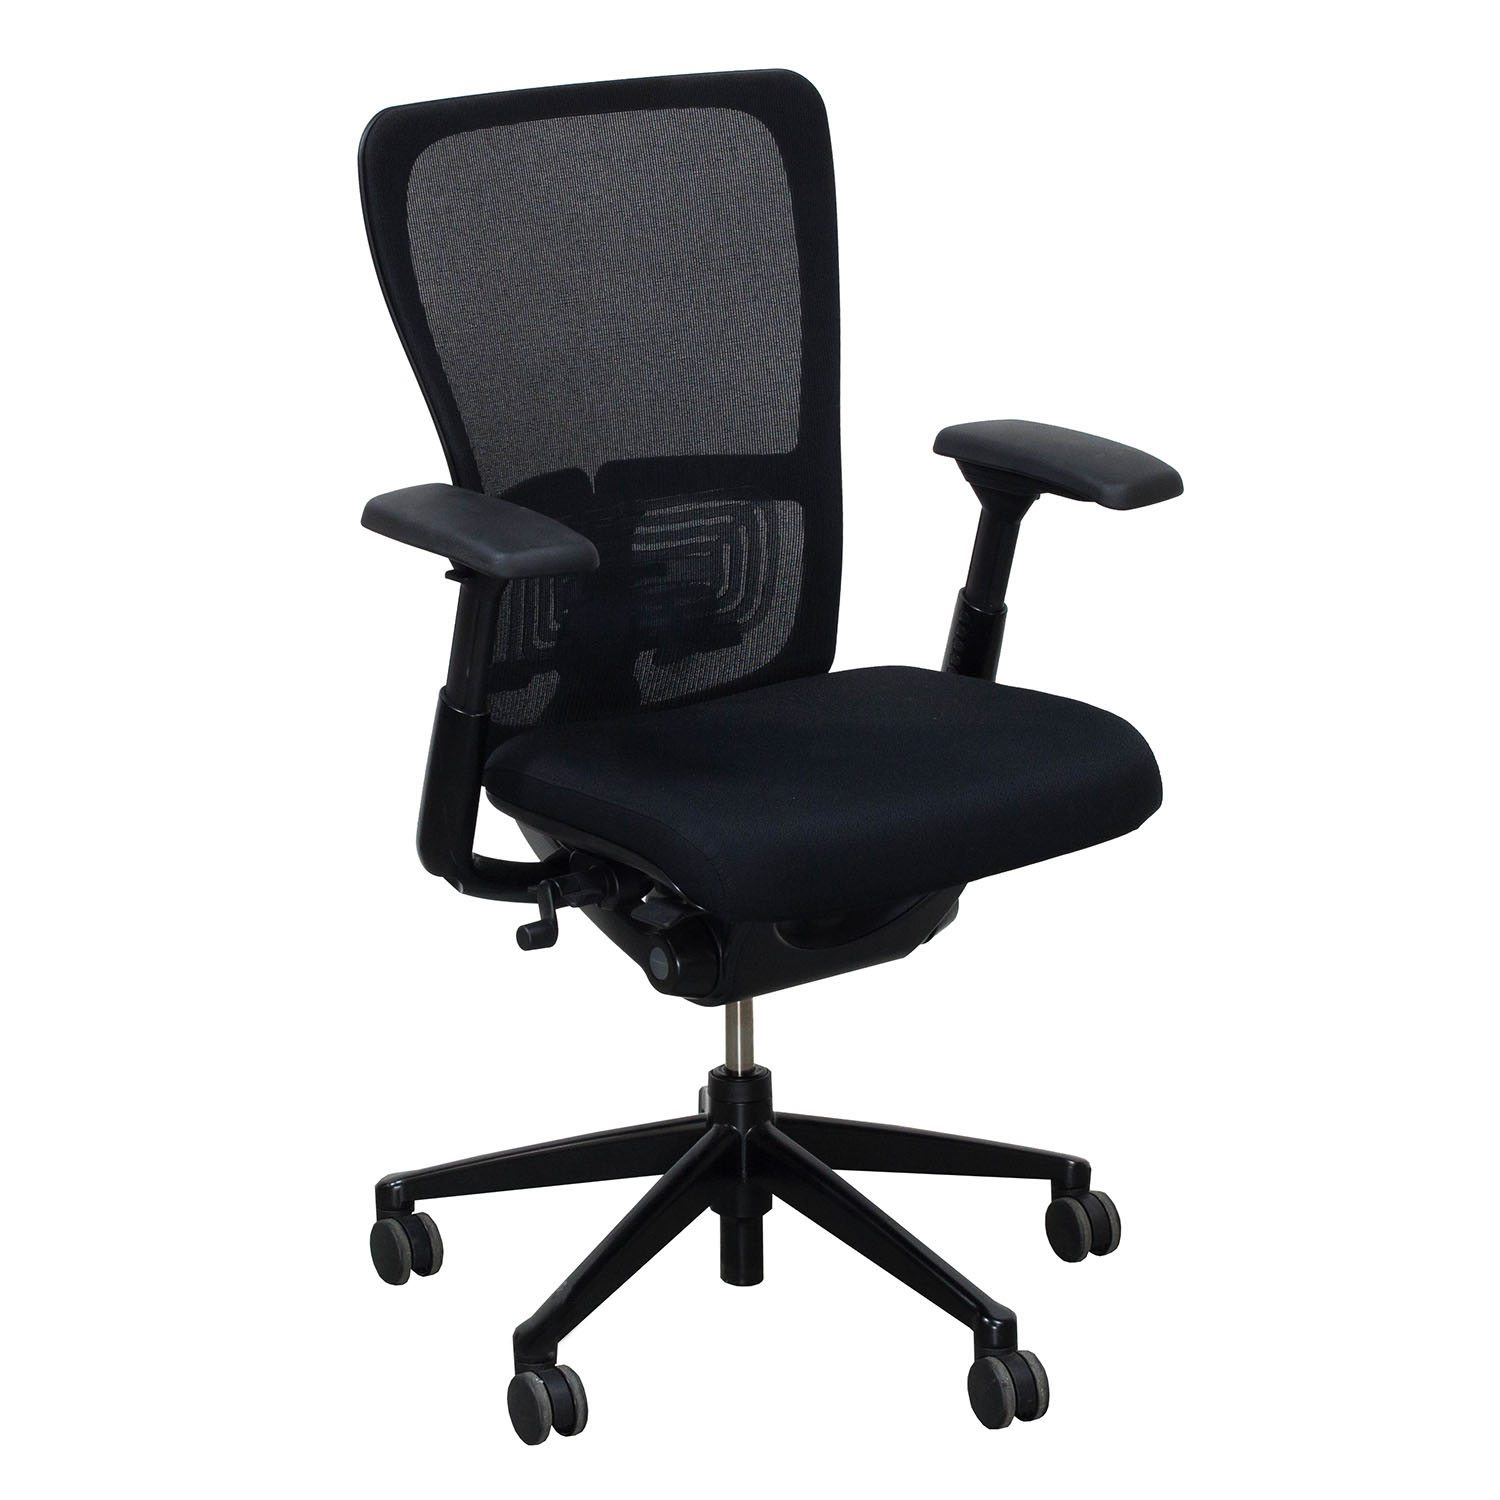 Black Wood Chair Seat >> Haworth Zody Mesh Back Used Task Chair, Black | National Office Interiors and Liquidators